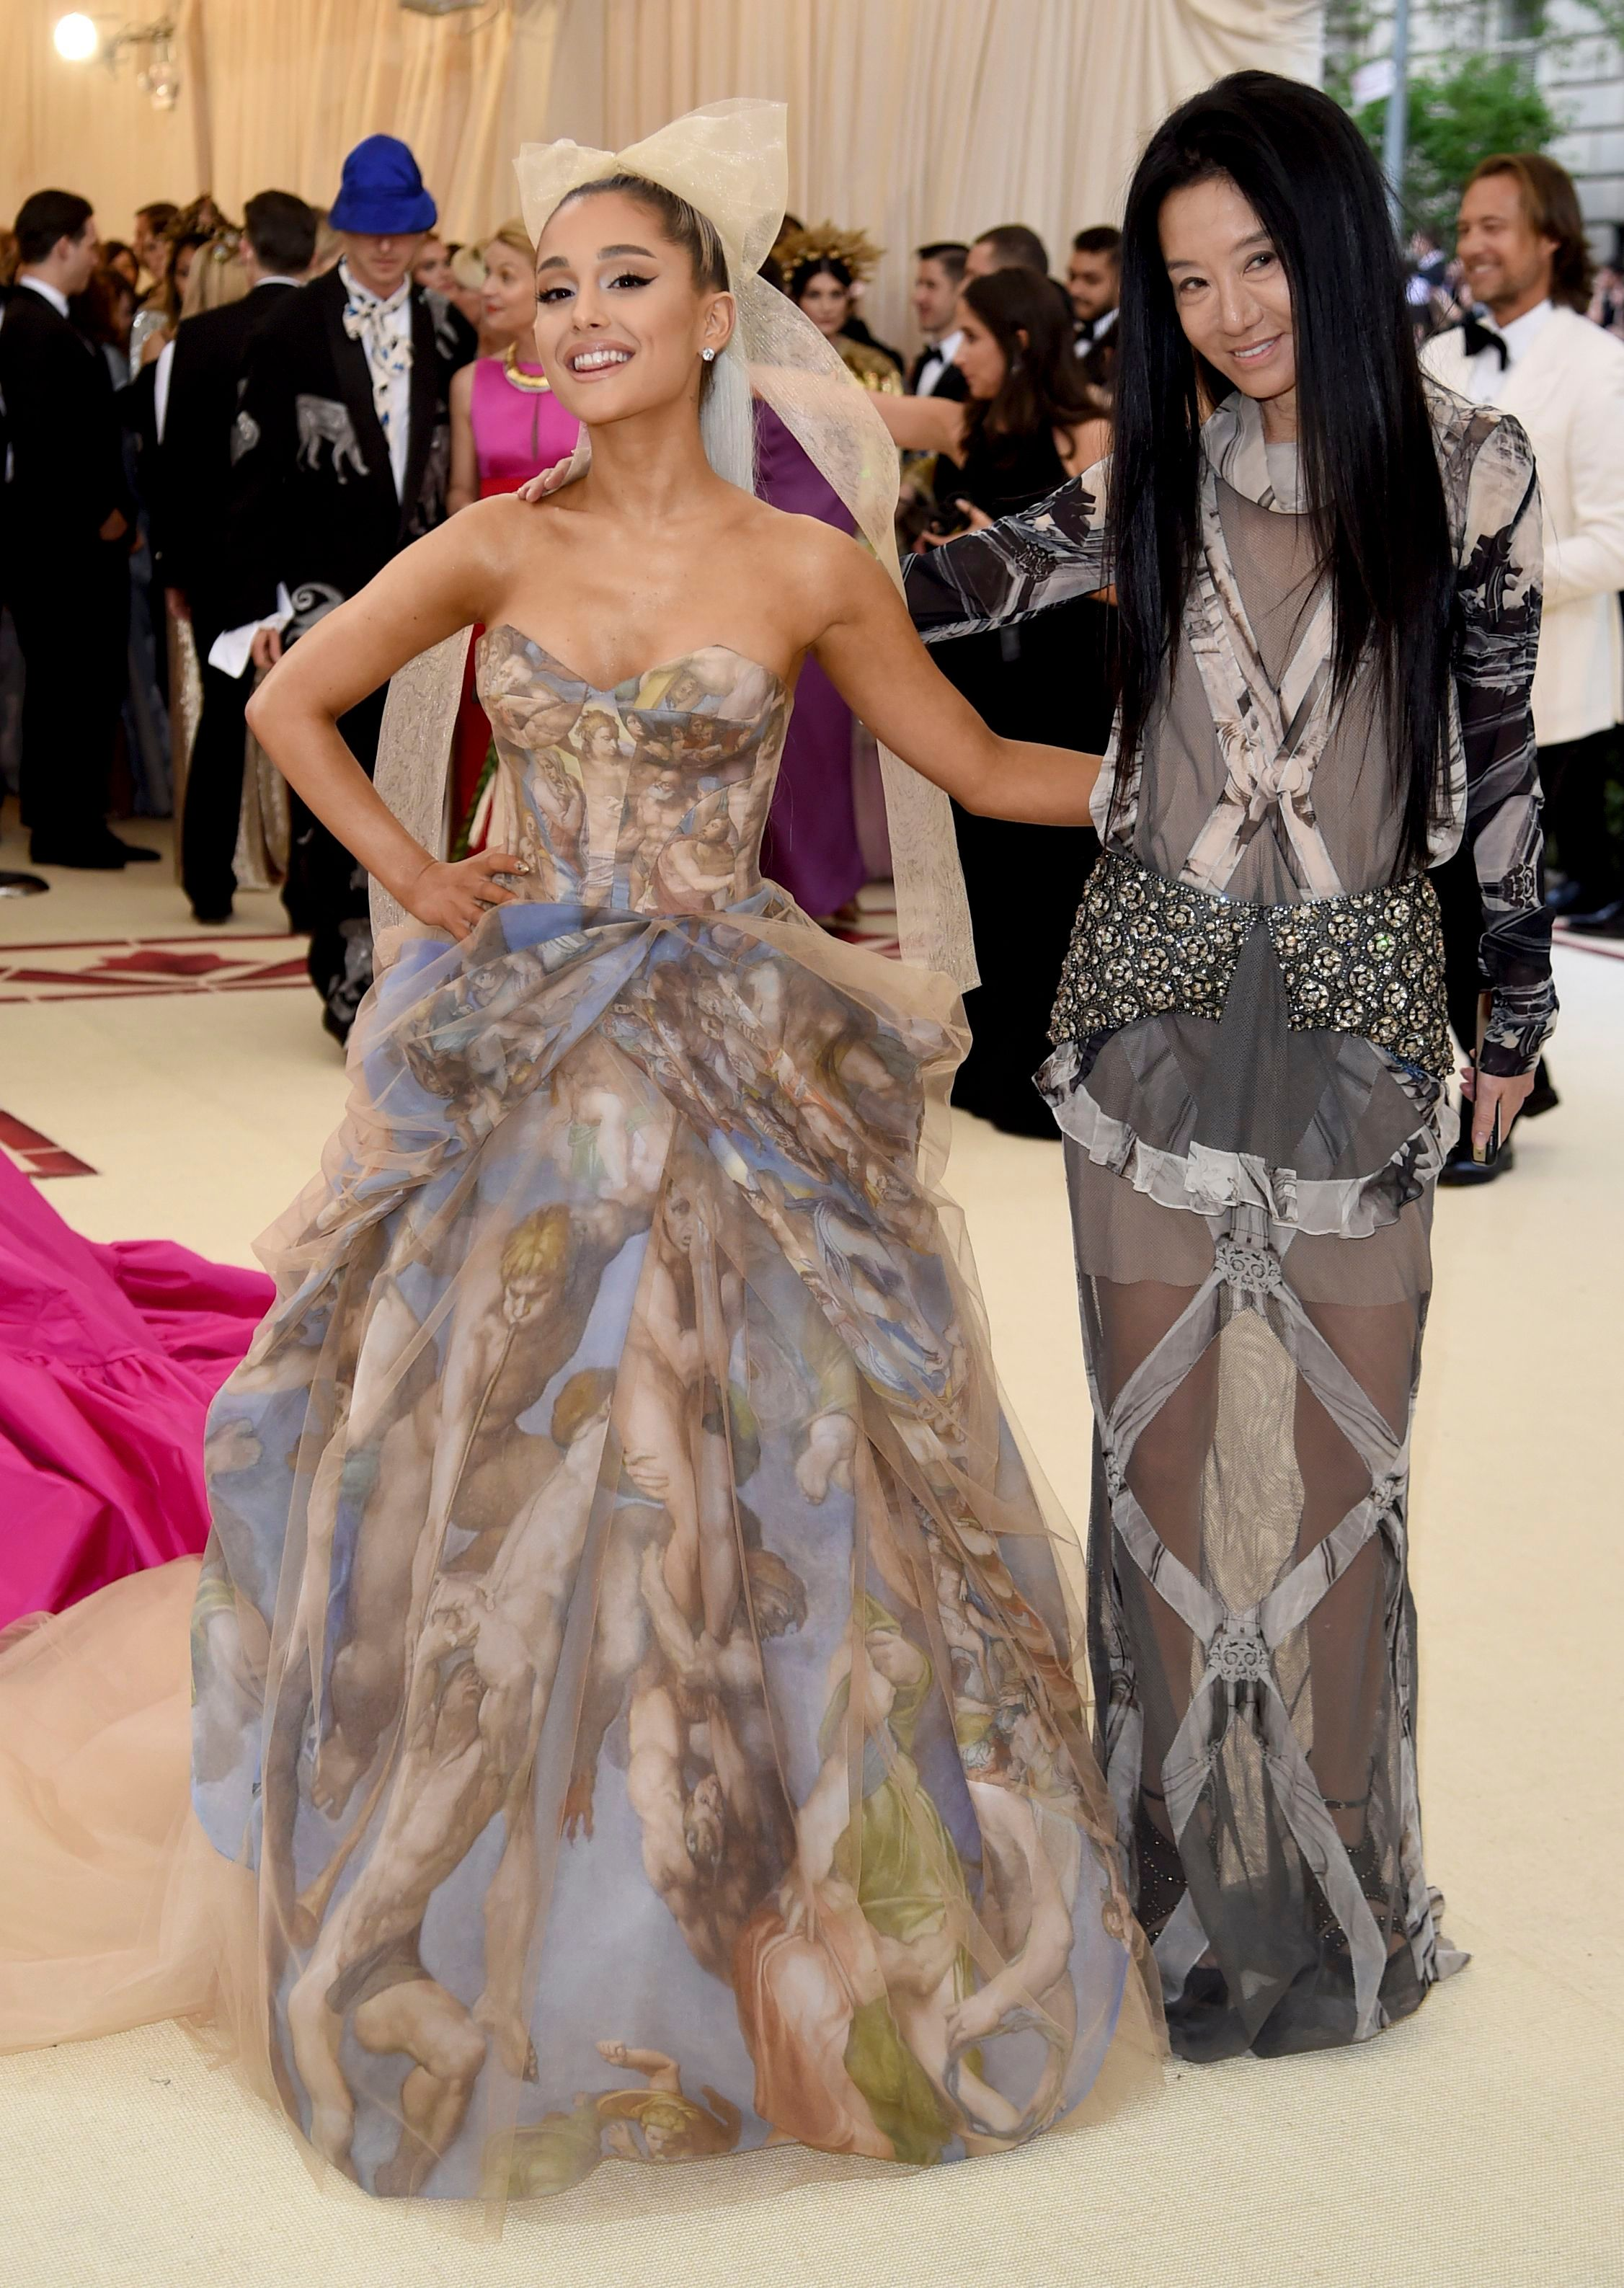 Ariana Grande, Vera Wang. Ariana Grande, left and Vera Wang attend The Metropolitan Museum of Art's Costume Institute benefit gala celebrating the opening of the Heavenly Bodies: Fashion and the Catholic Imagination exhibition, in New York2018 MET Museum Costume Institute Benefit Gala, New York, USA - 07 May 2018